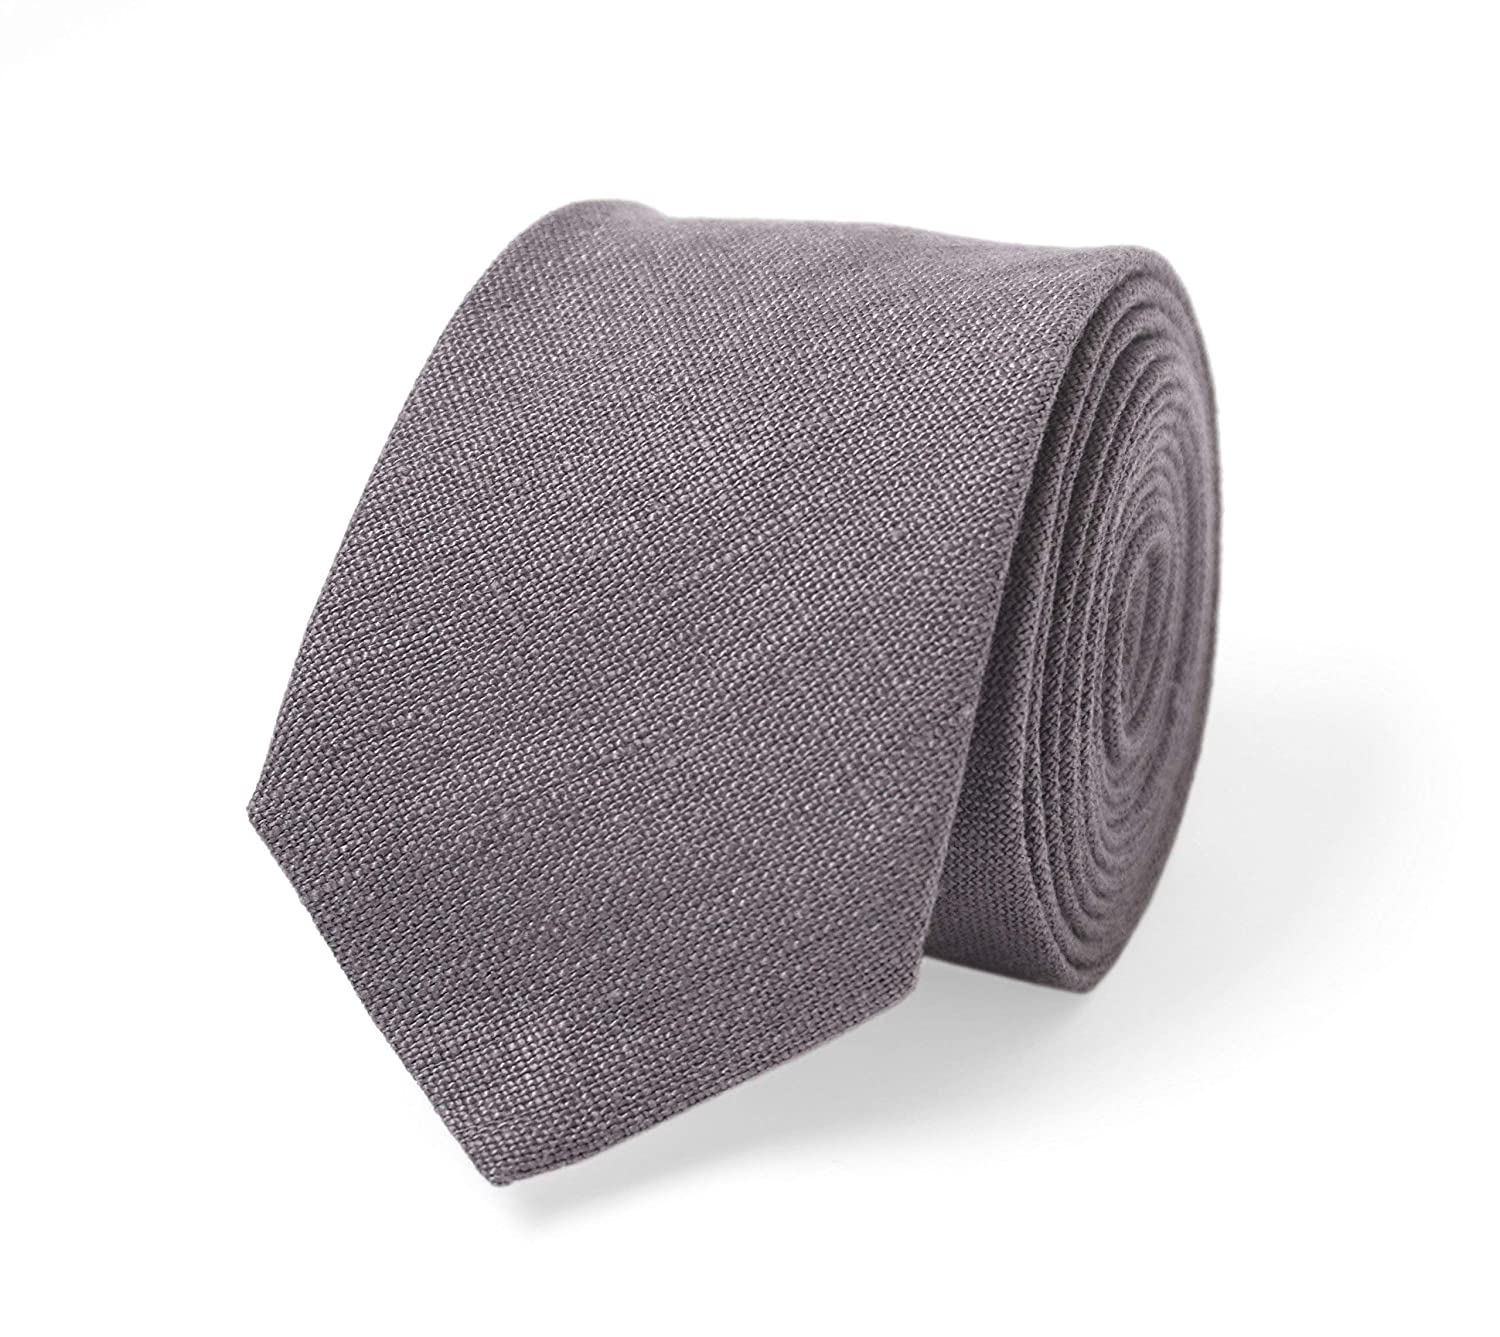 Lilac gray linen wedding necktie for groomsmen and groom/dusty purple baby and kids bow tie/groomsmen gift/lilac grey bow ties for men and boys/boho wedding/toddler bow tie/pocket square